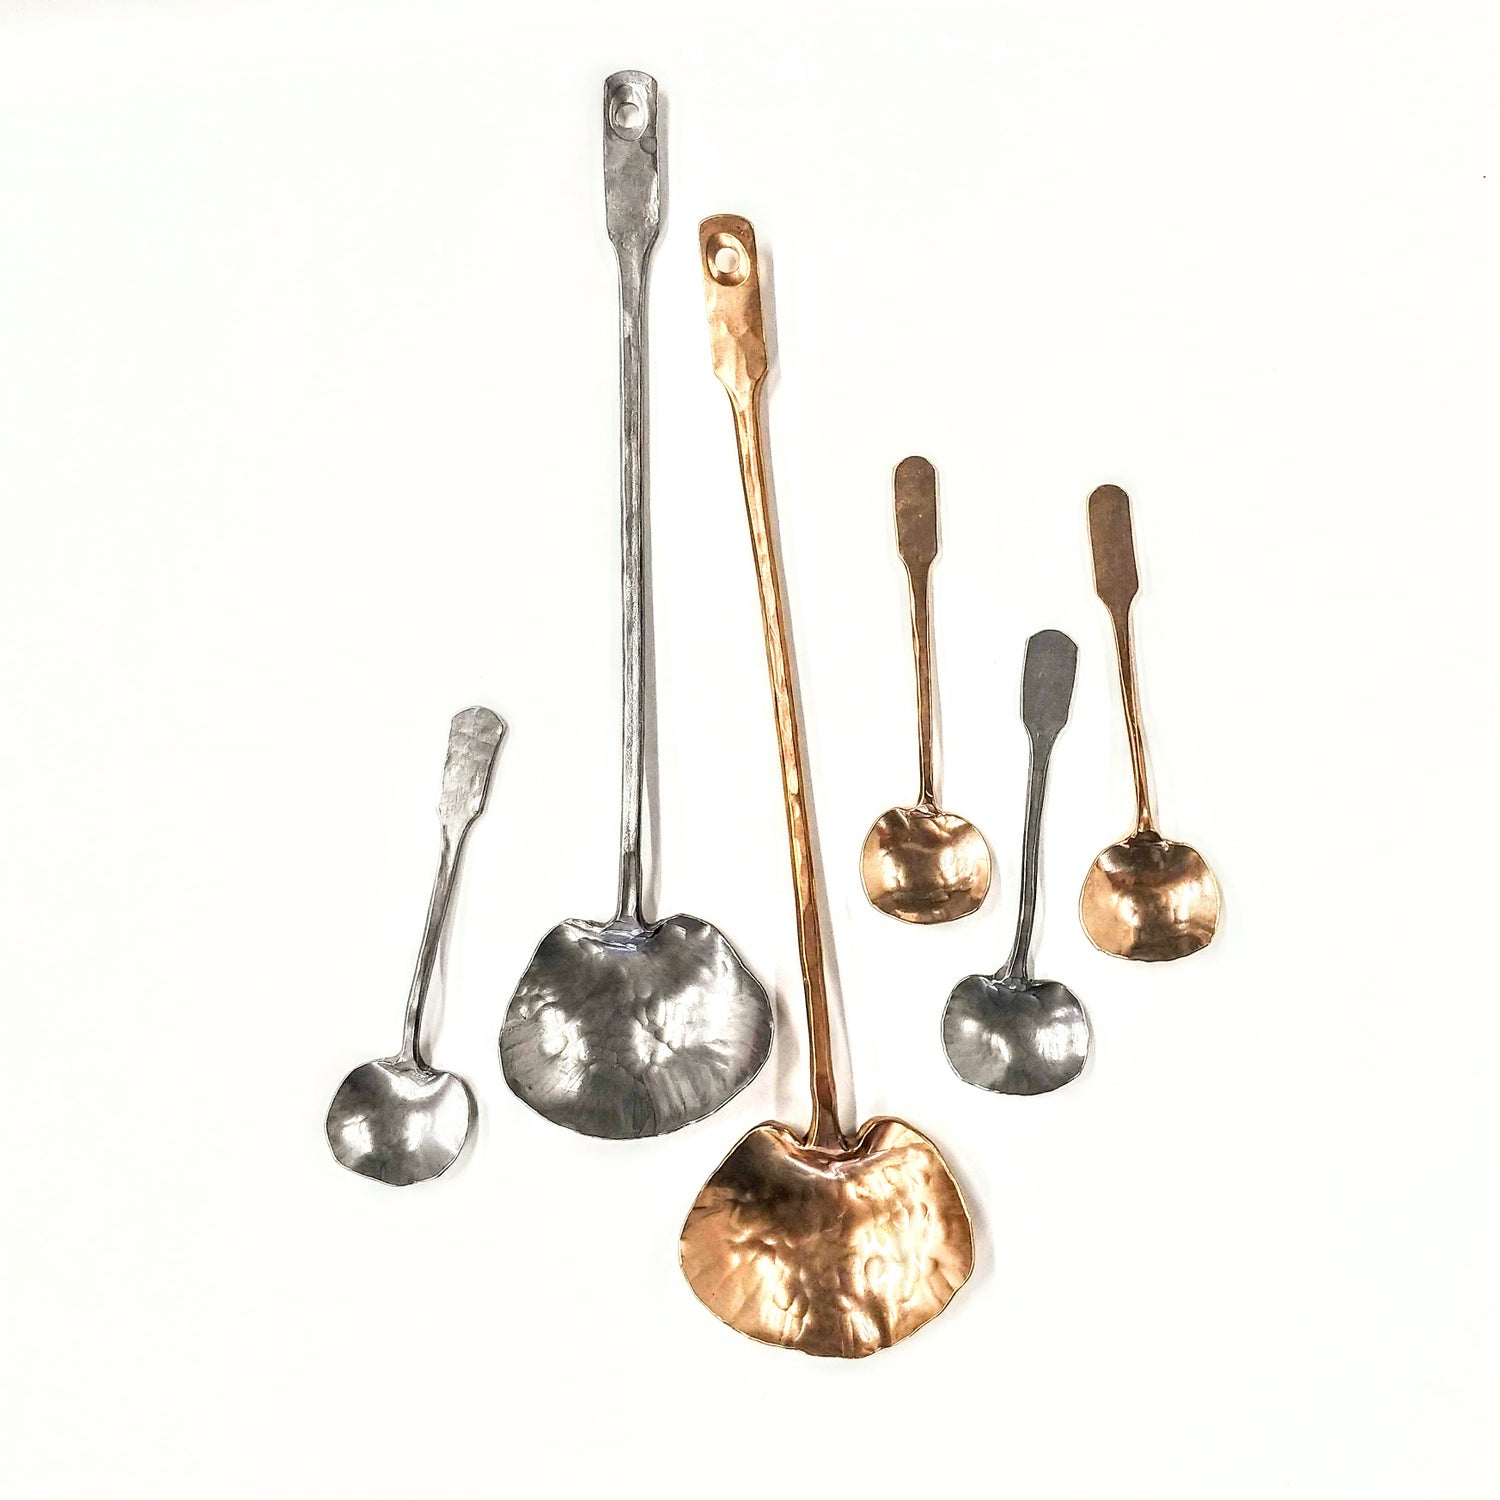 Image of Smash Spoons